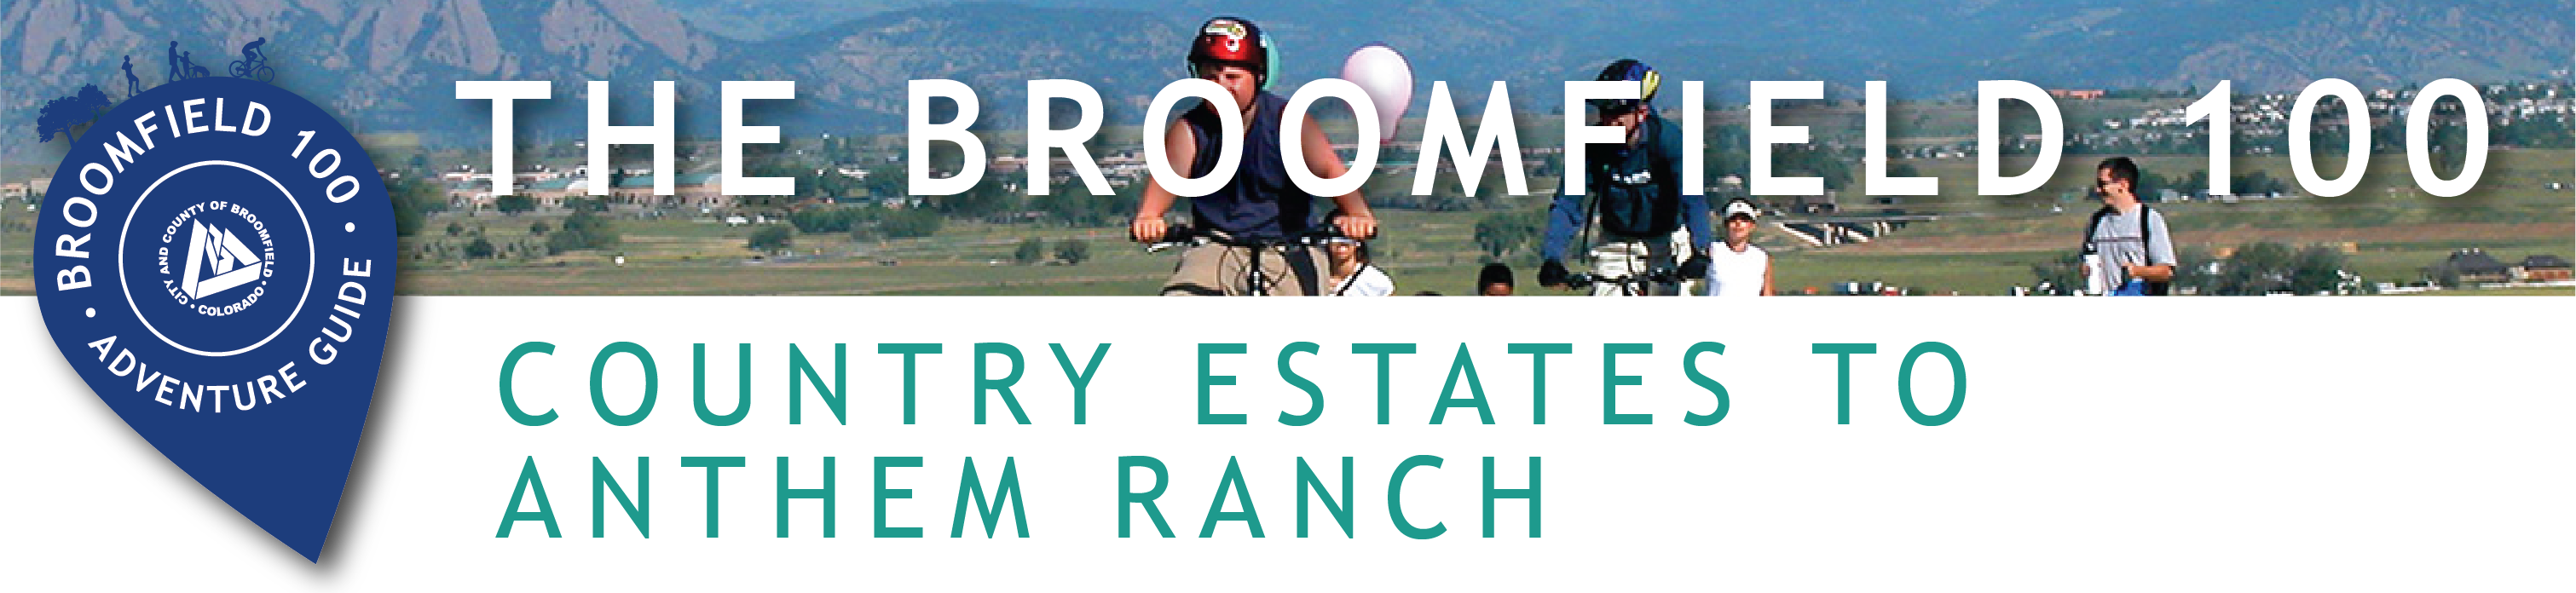 2019 Broomfield100 web banners_country eststes anthem ranch